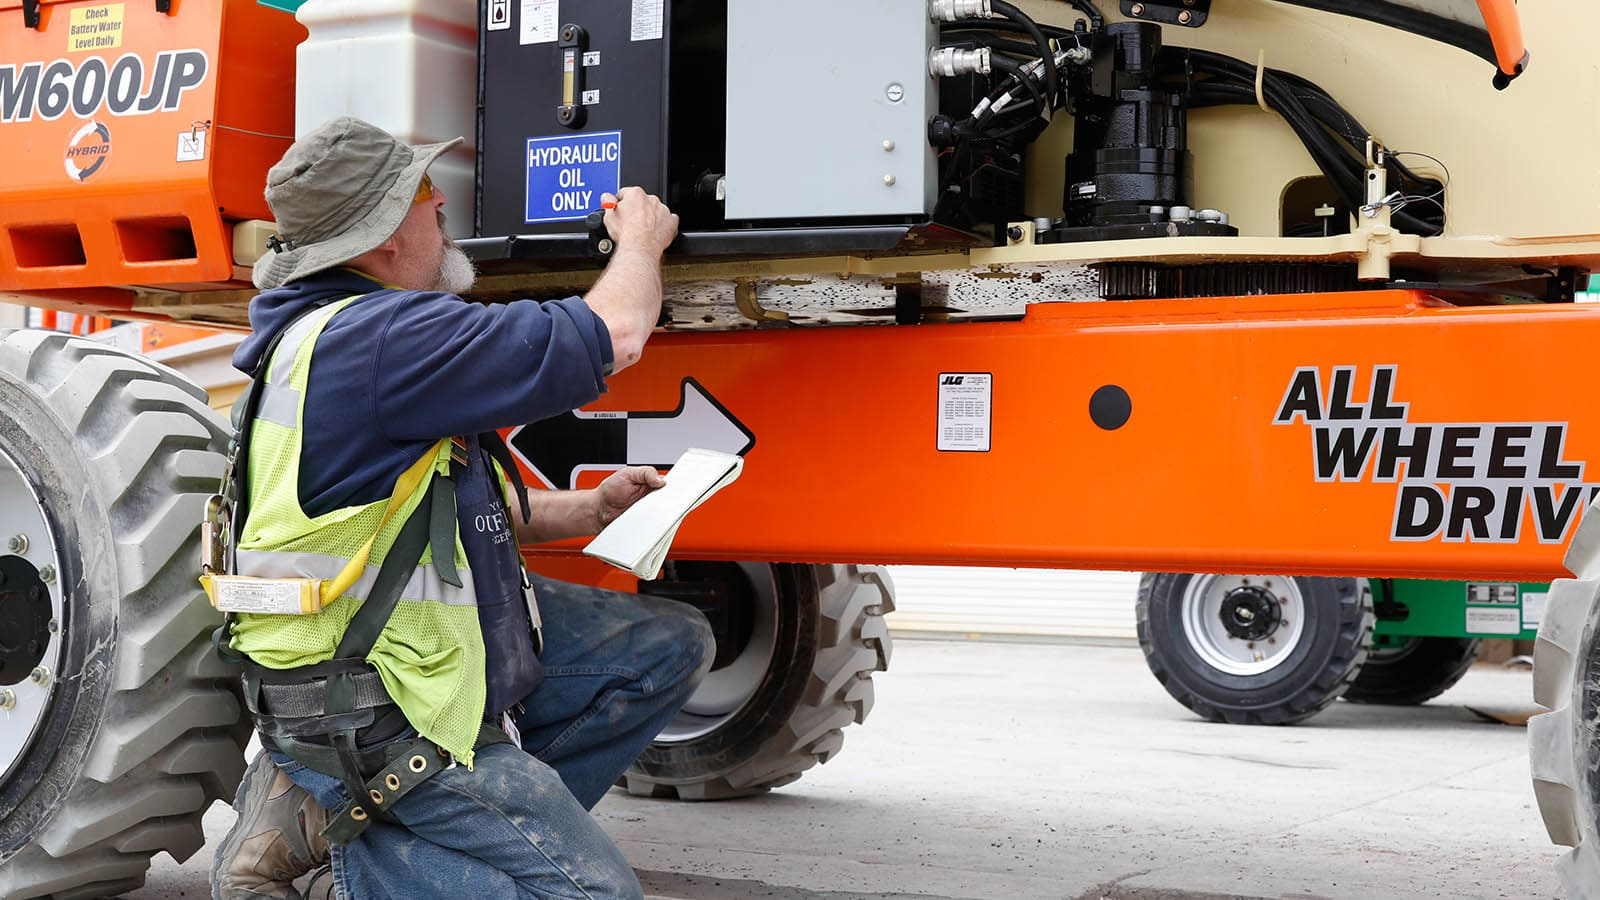 jlg reconditioning final inspection